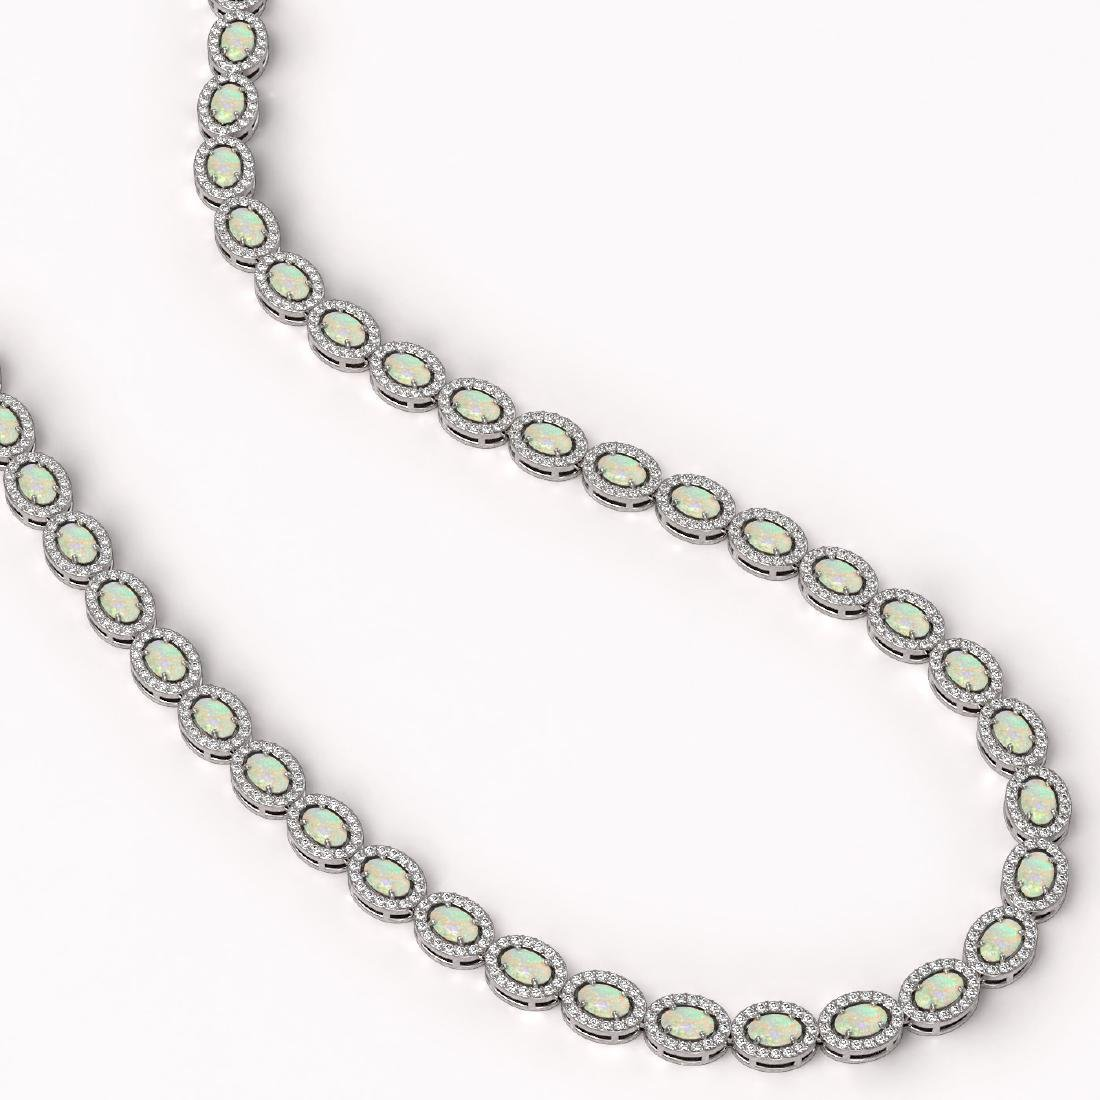 20.22 CTW Opal & Diamond Halo Necklace 10K White Gold - 2